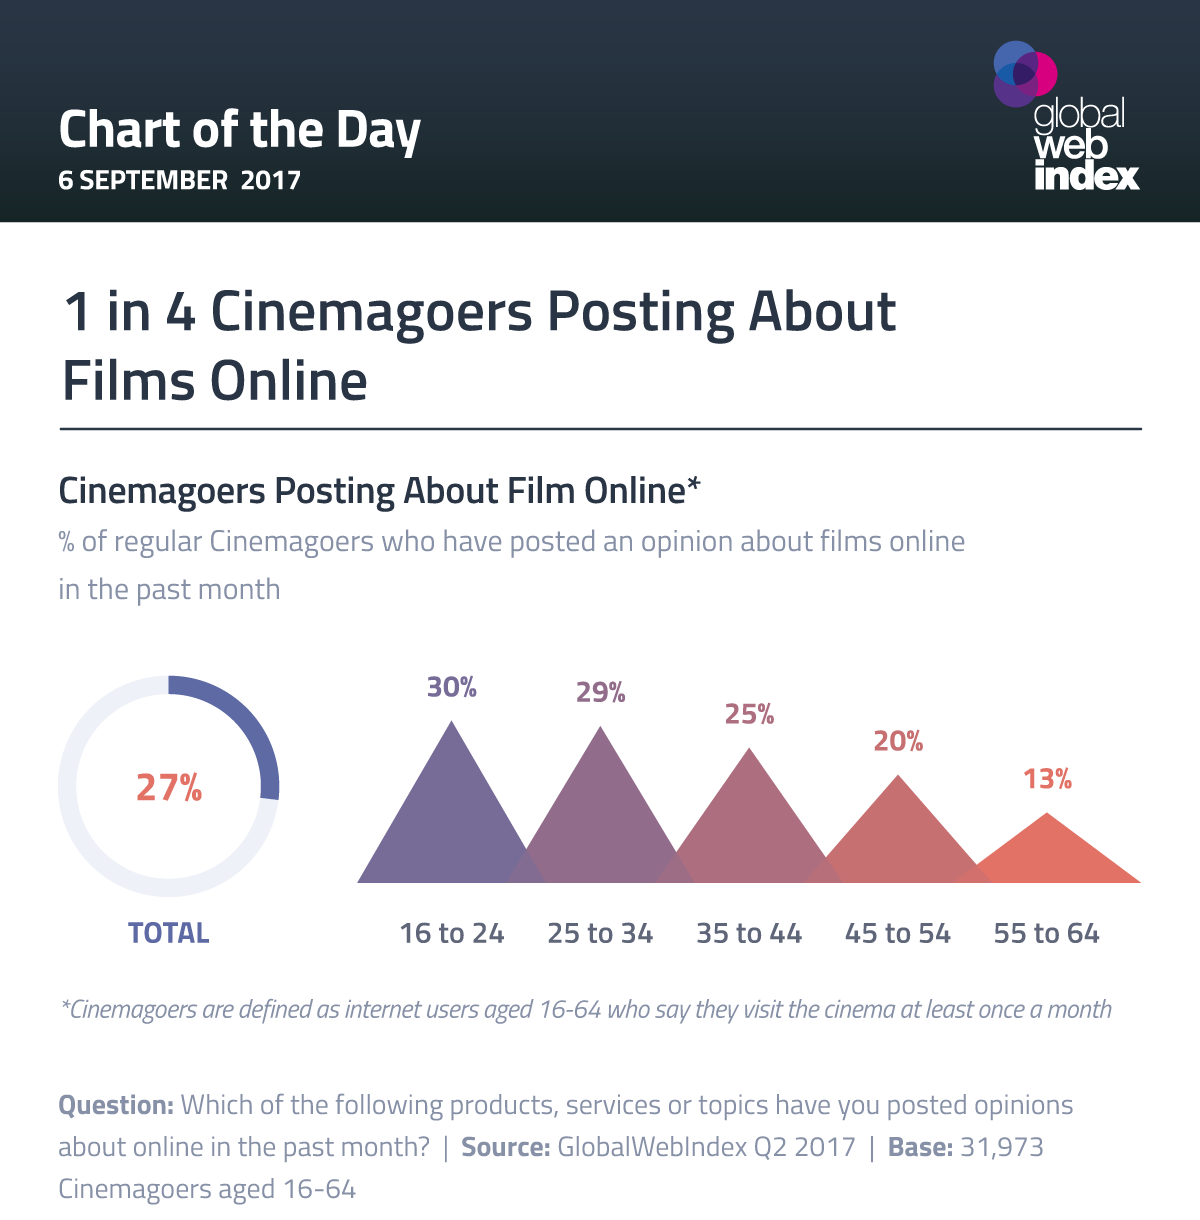 1 in 4 Cinemagoers Posting About Films Online